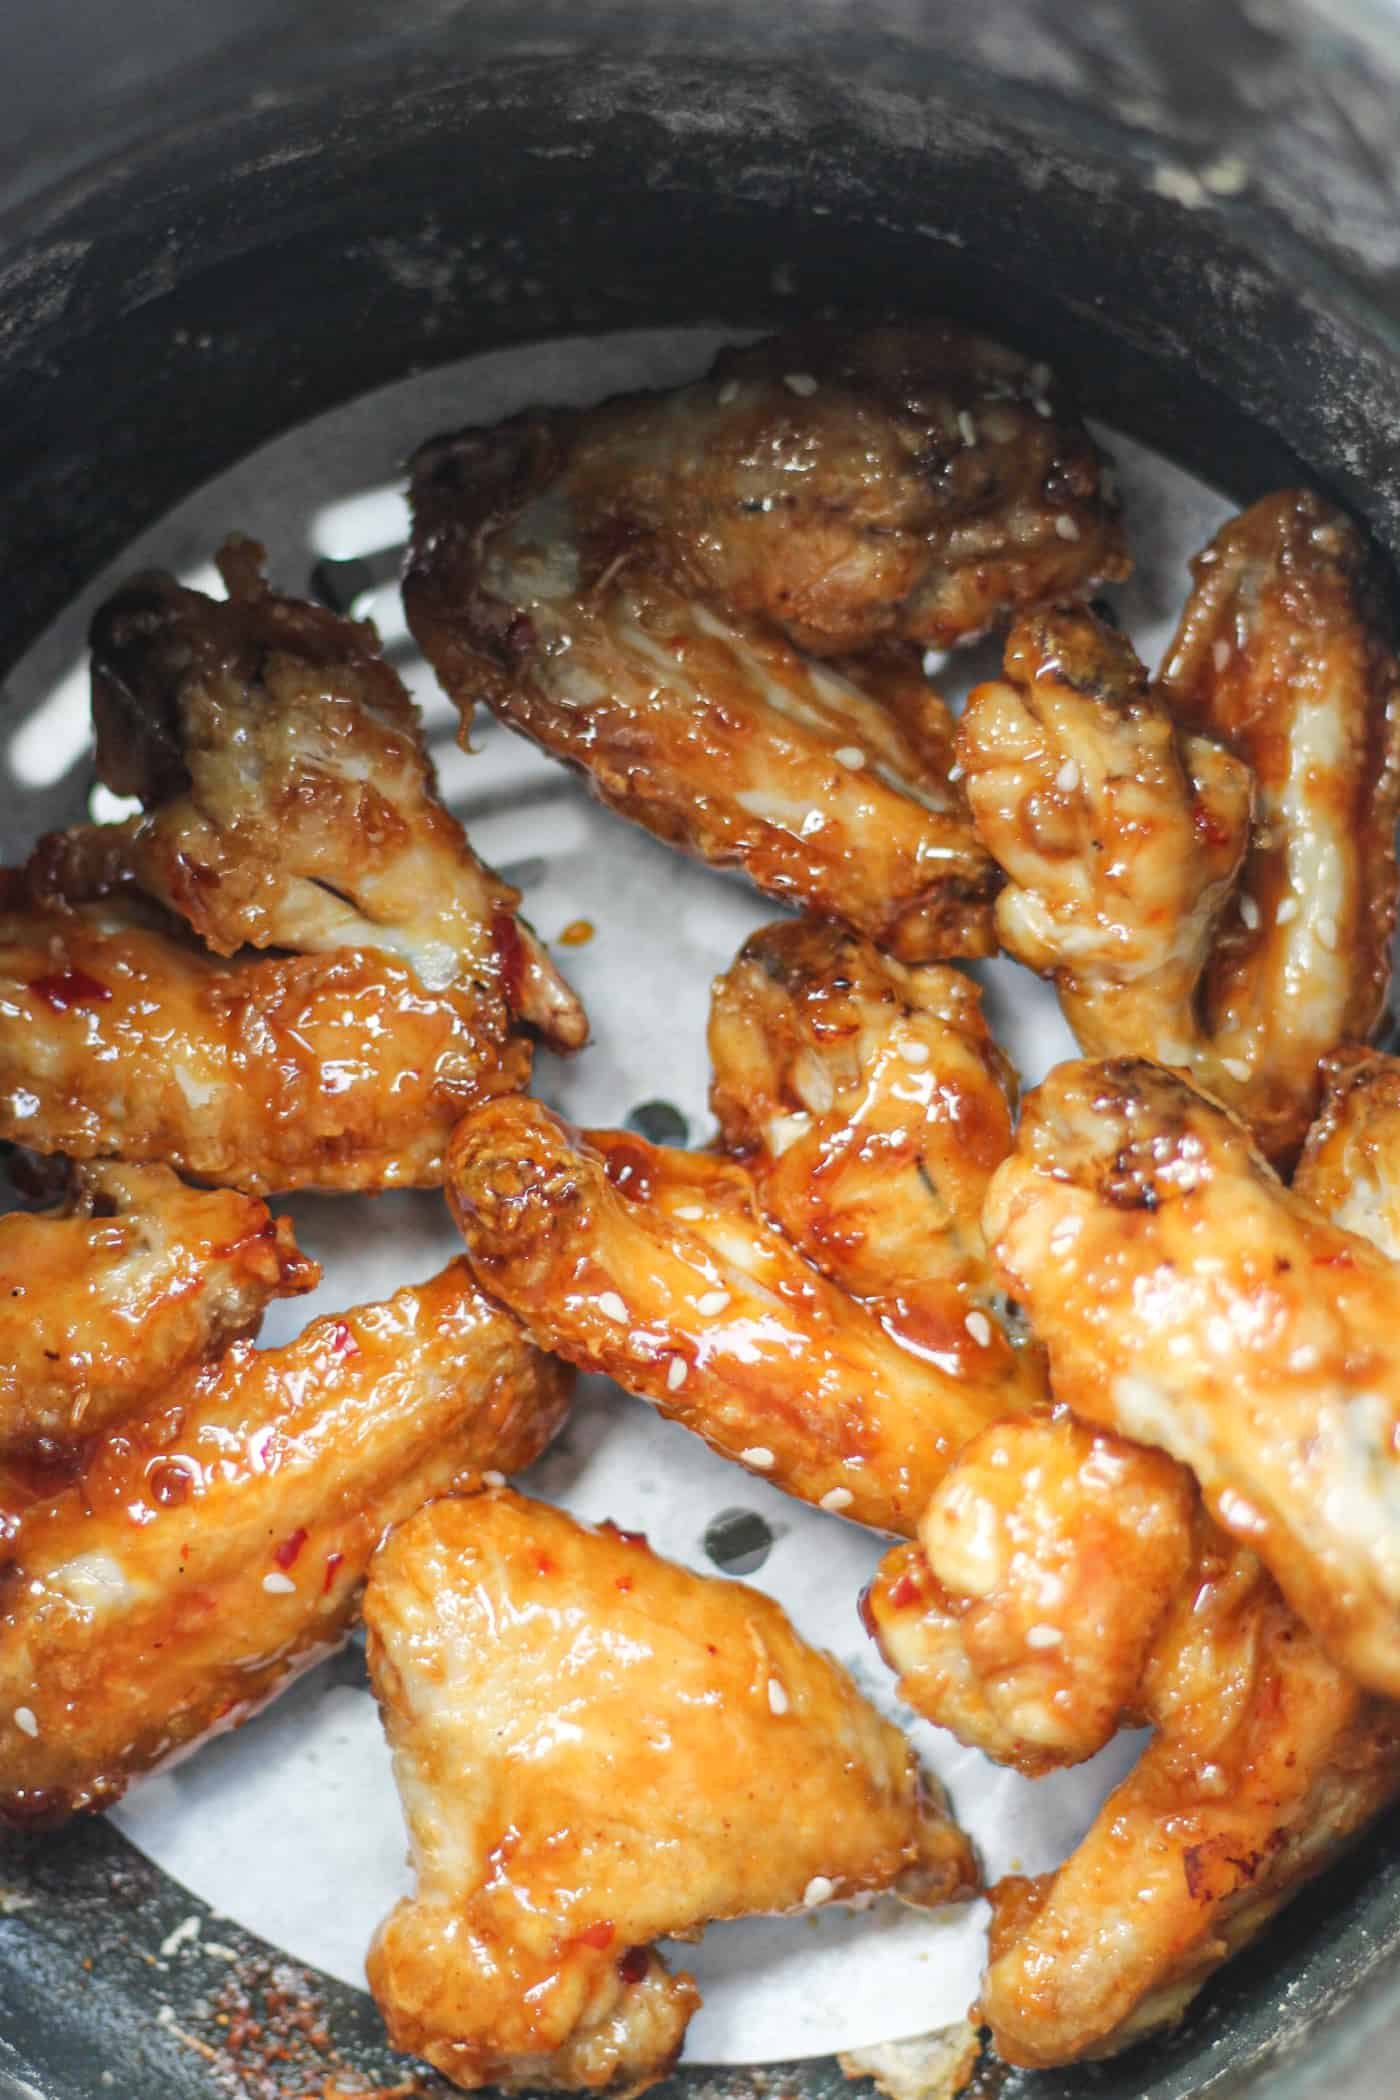 sweet chili chicken wings in an air fryer basket